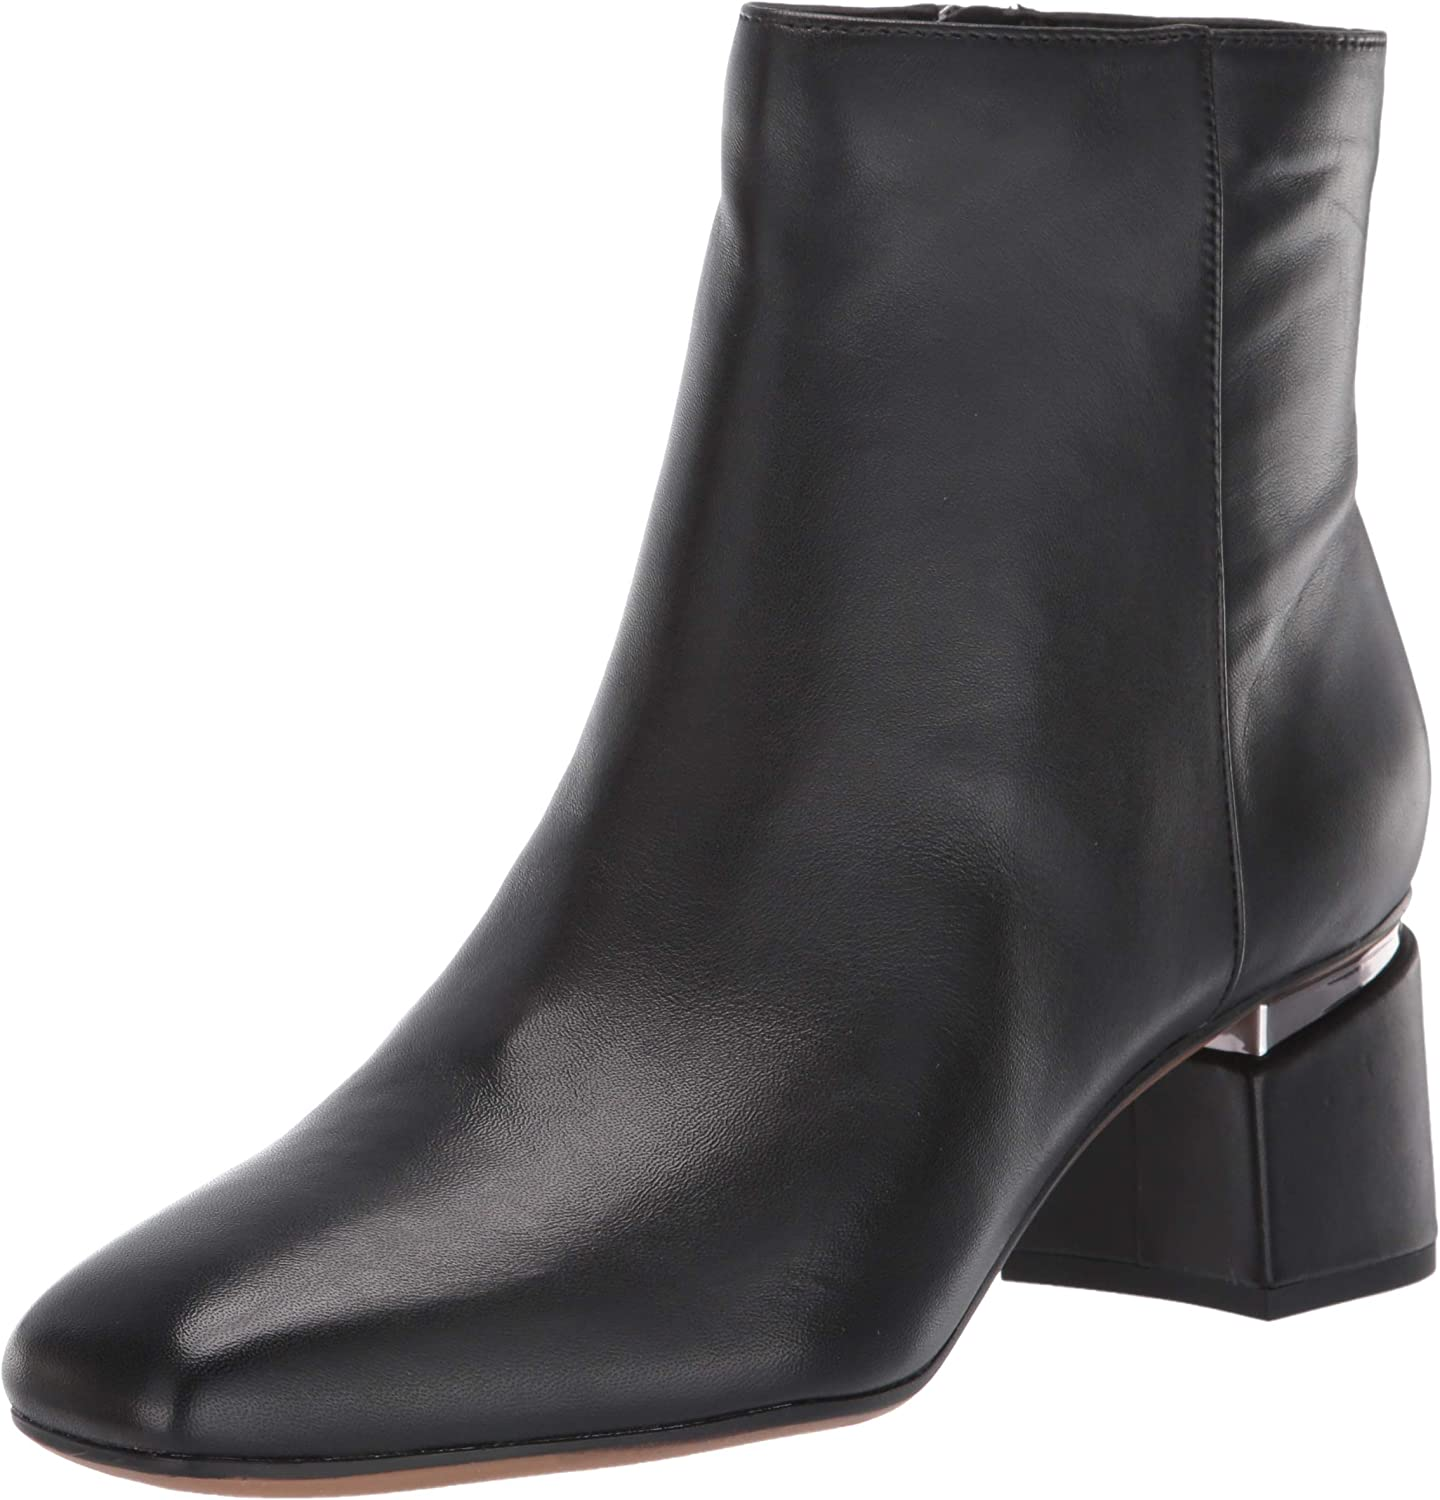 35% OFF Franco Sarto OFFicial site Women's Marquee Ankle Boot